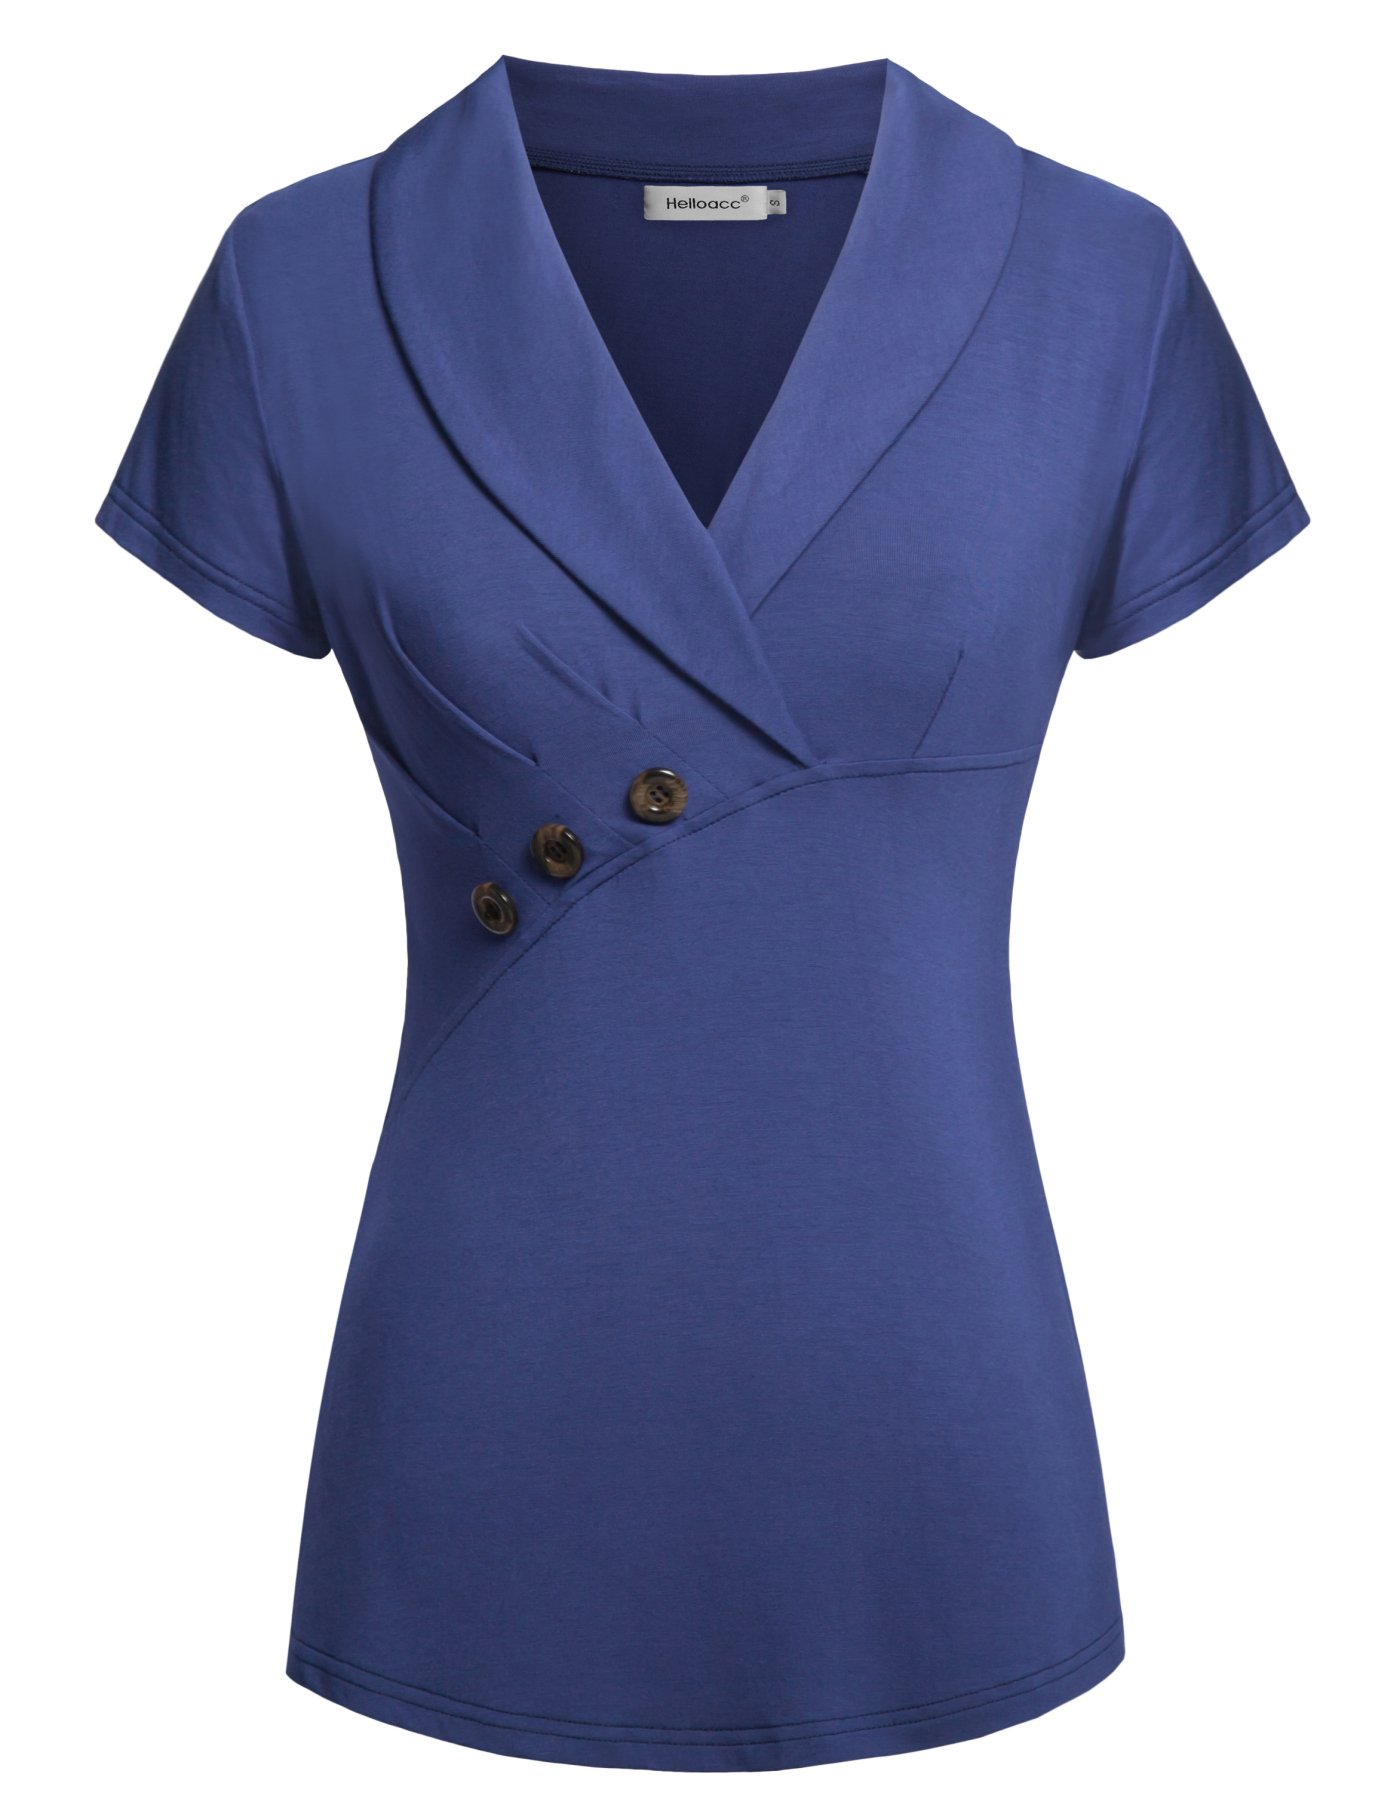 Helloacc Short Sleeve Blouses for Women, Lady Summer Casual V Neck Slimming Fit Solid Color Lightweight Oversized Office Blouse Shirt Top Wear to Work Royal Blue 2XL